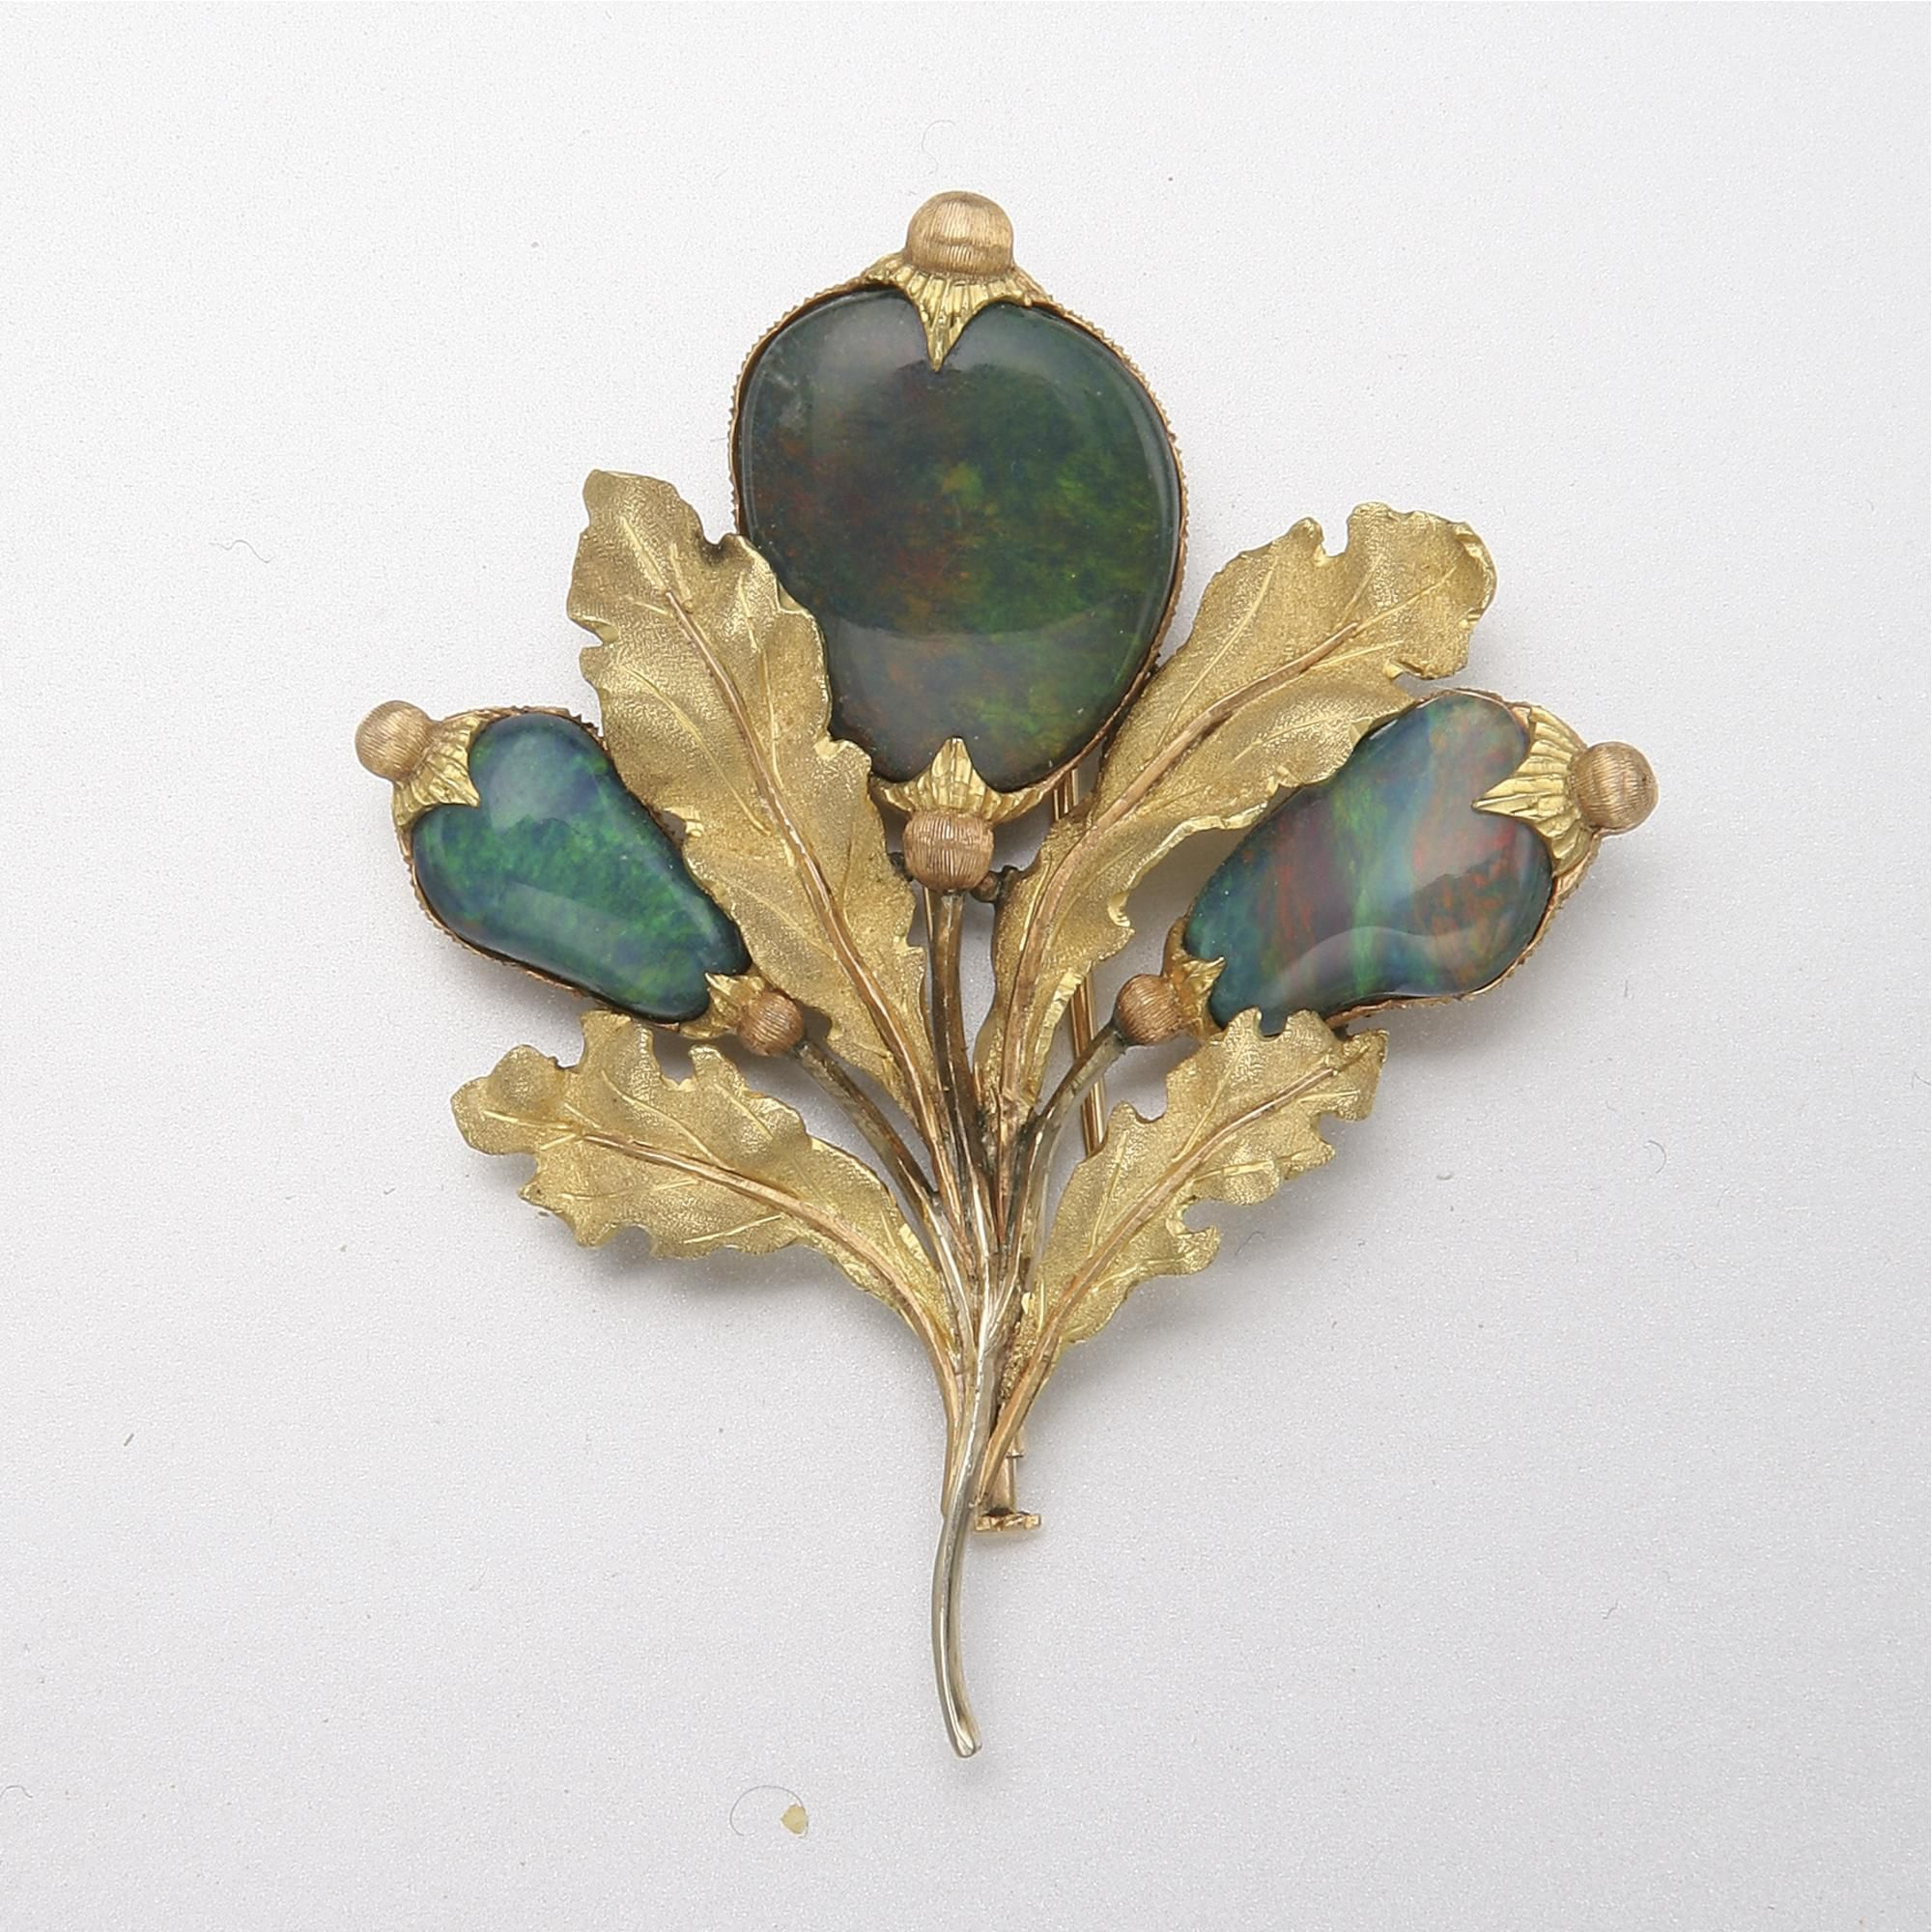 THREE-COLOR GOLD AND OPAL DOUBLET BROOCH, BUCCELLATI